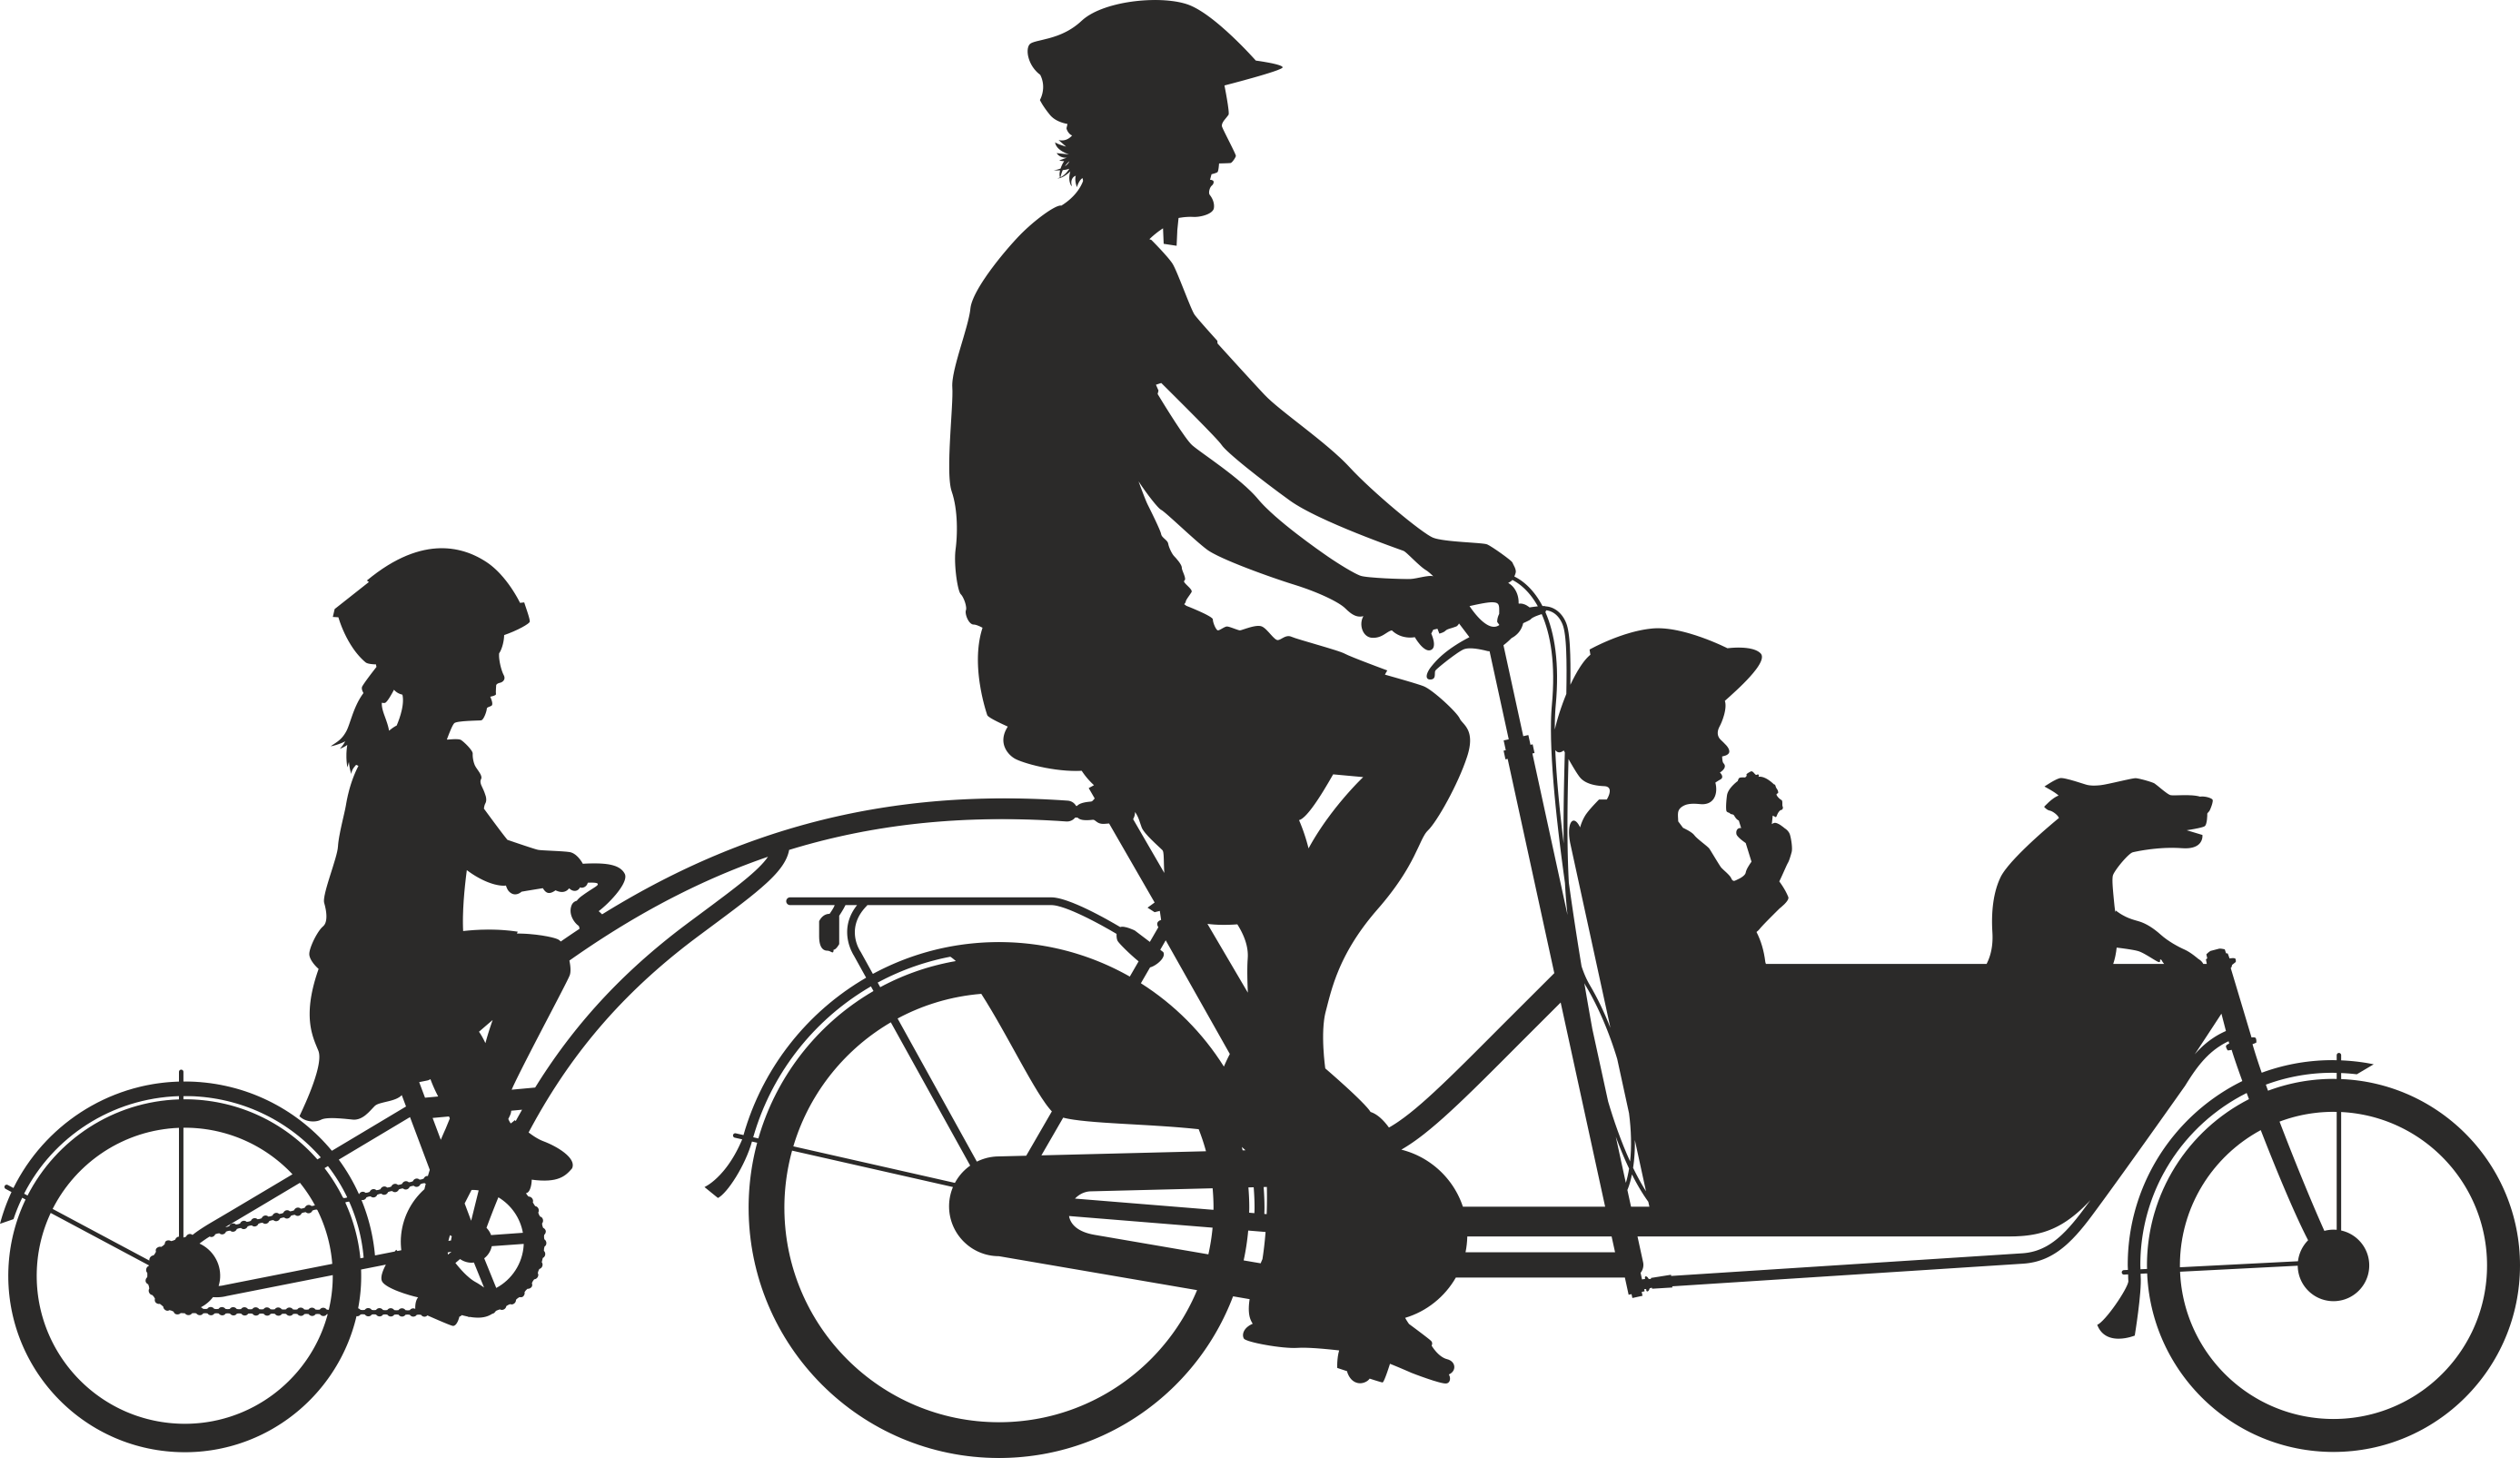 Silhouette Cyclist Collection Of Bicycle 02 Free DXF File